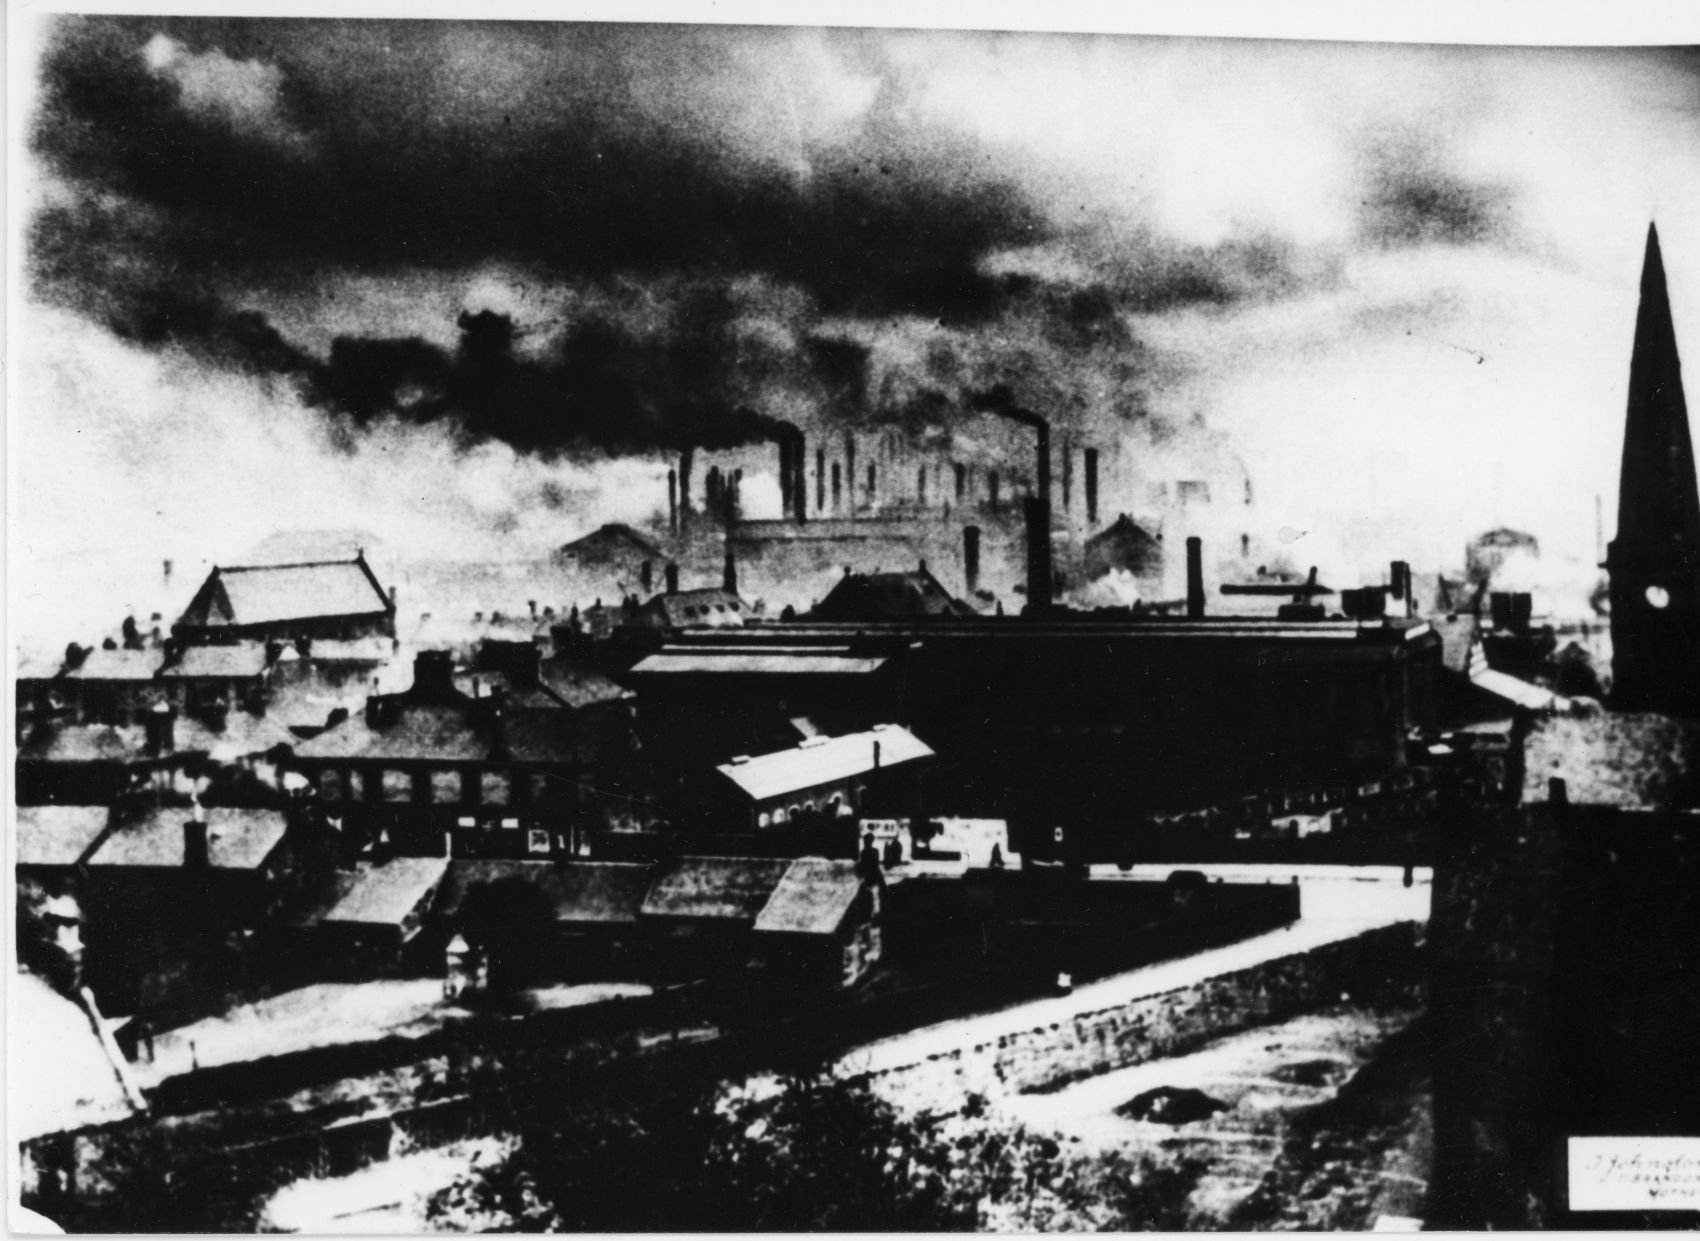 'Silver Linings' by T Johnstone, 1930s. This pictorialist photograph of Motherwell shows the town dominated by its steelworks.